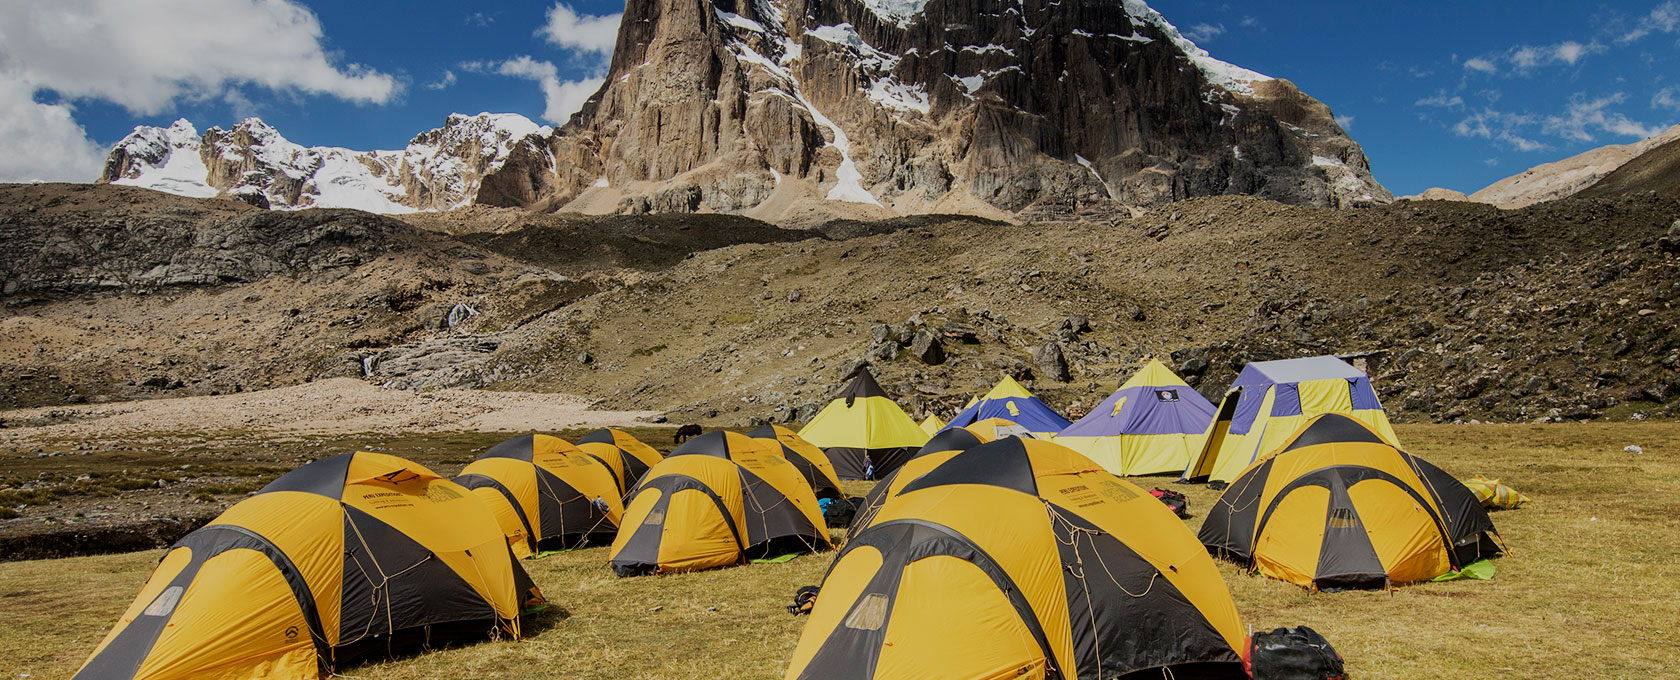 Awesome Cordillera Blanca - Expedition to the highest mountains of Peru